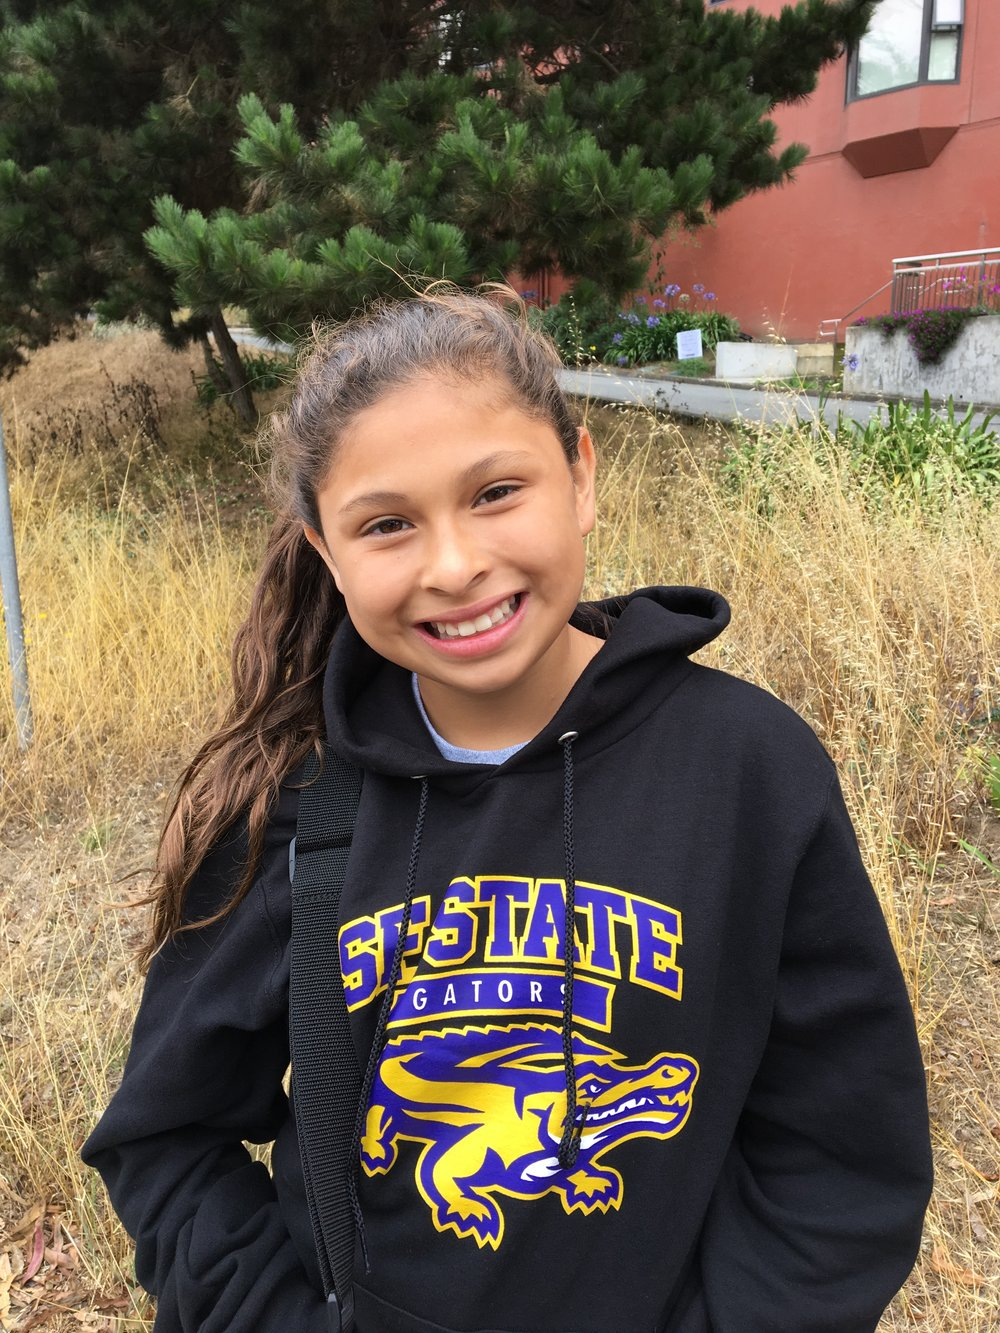 Hello! - My name is Jennifer Lopez-Valencia and I'm 11 years old in 6th grade. I started playing soccer with Girls Leading Girls in 4th grade.